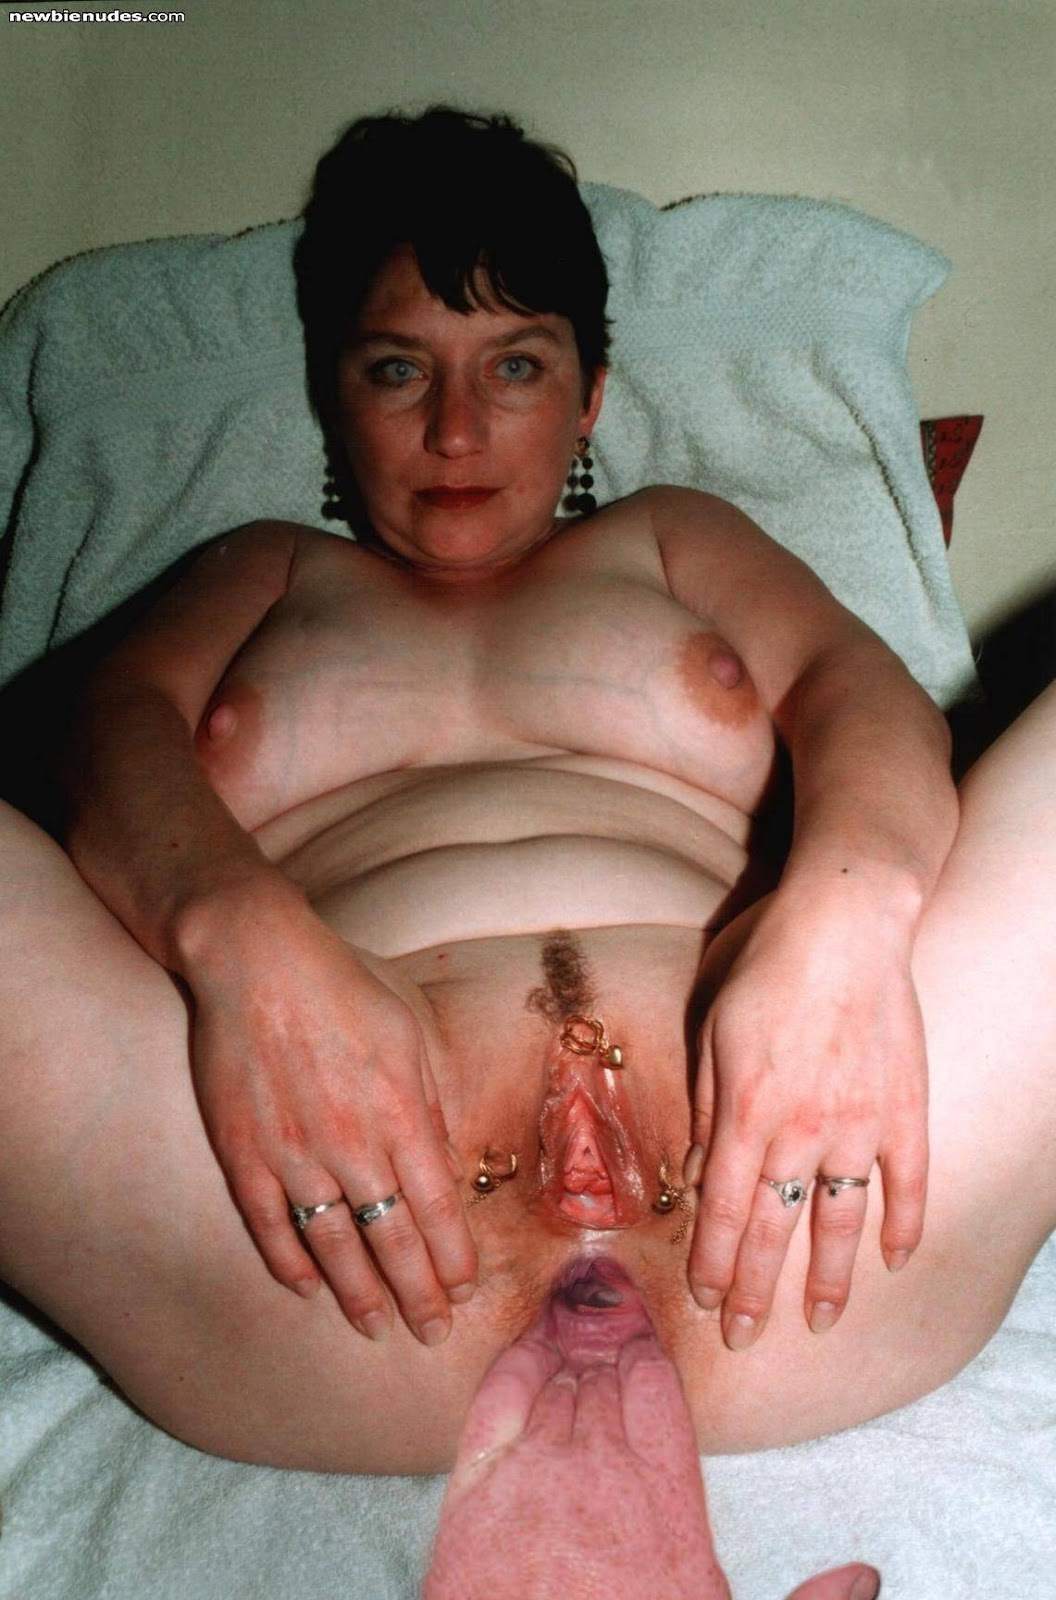 Collection Old Dirty Grannies Pictures - Amateur Adult Gallery